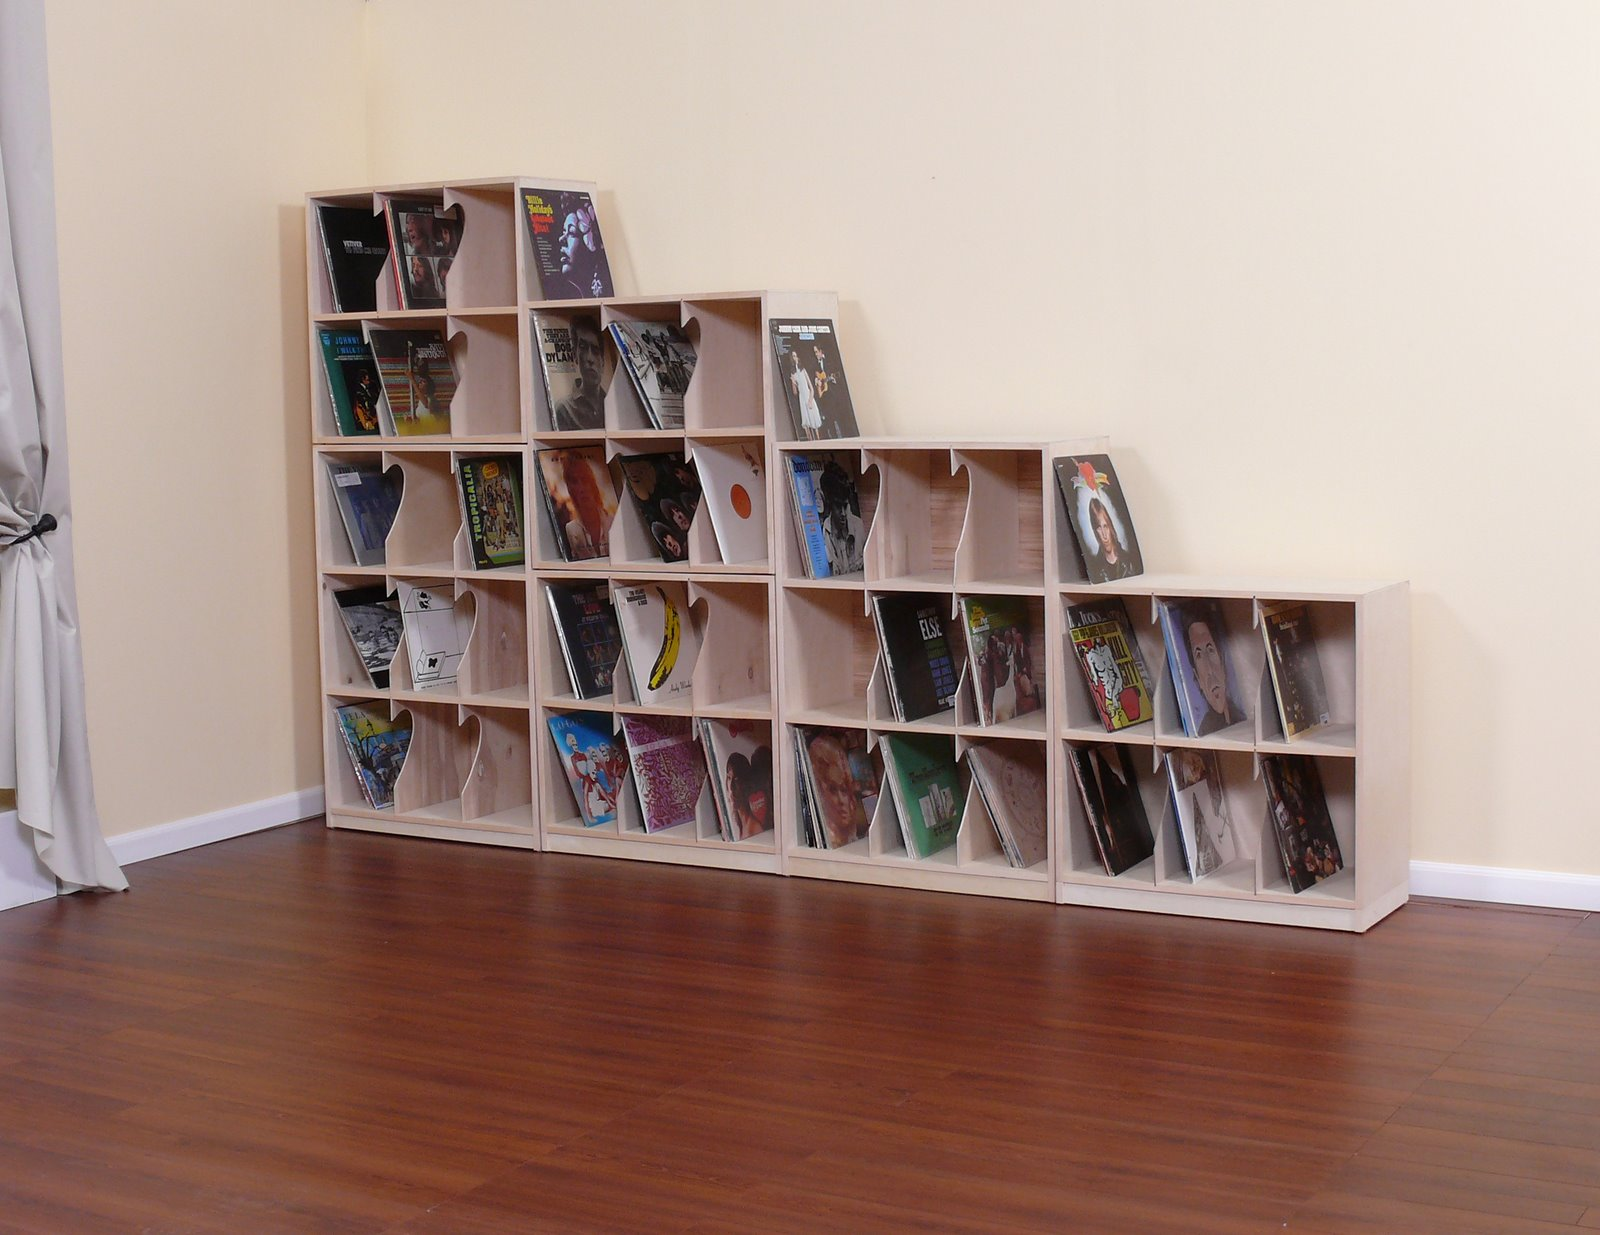 1000+ images about LP record storage - SHELVES on ...